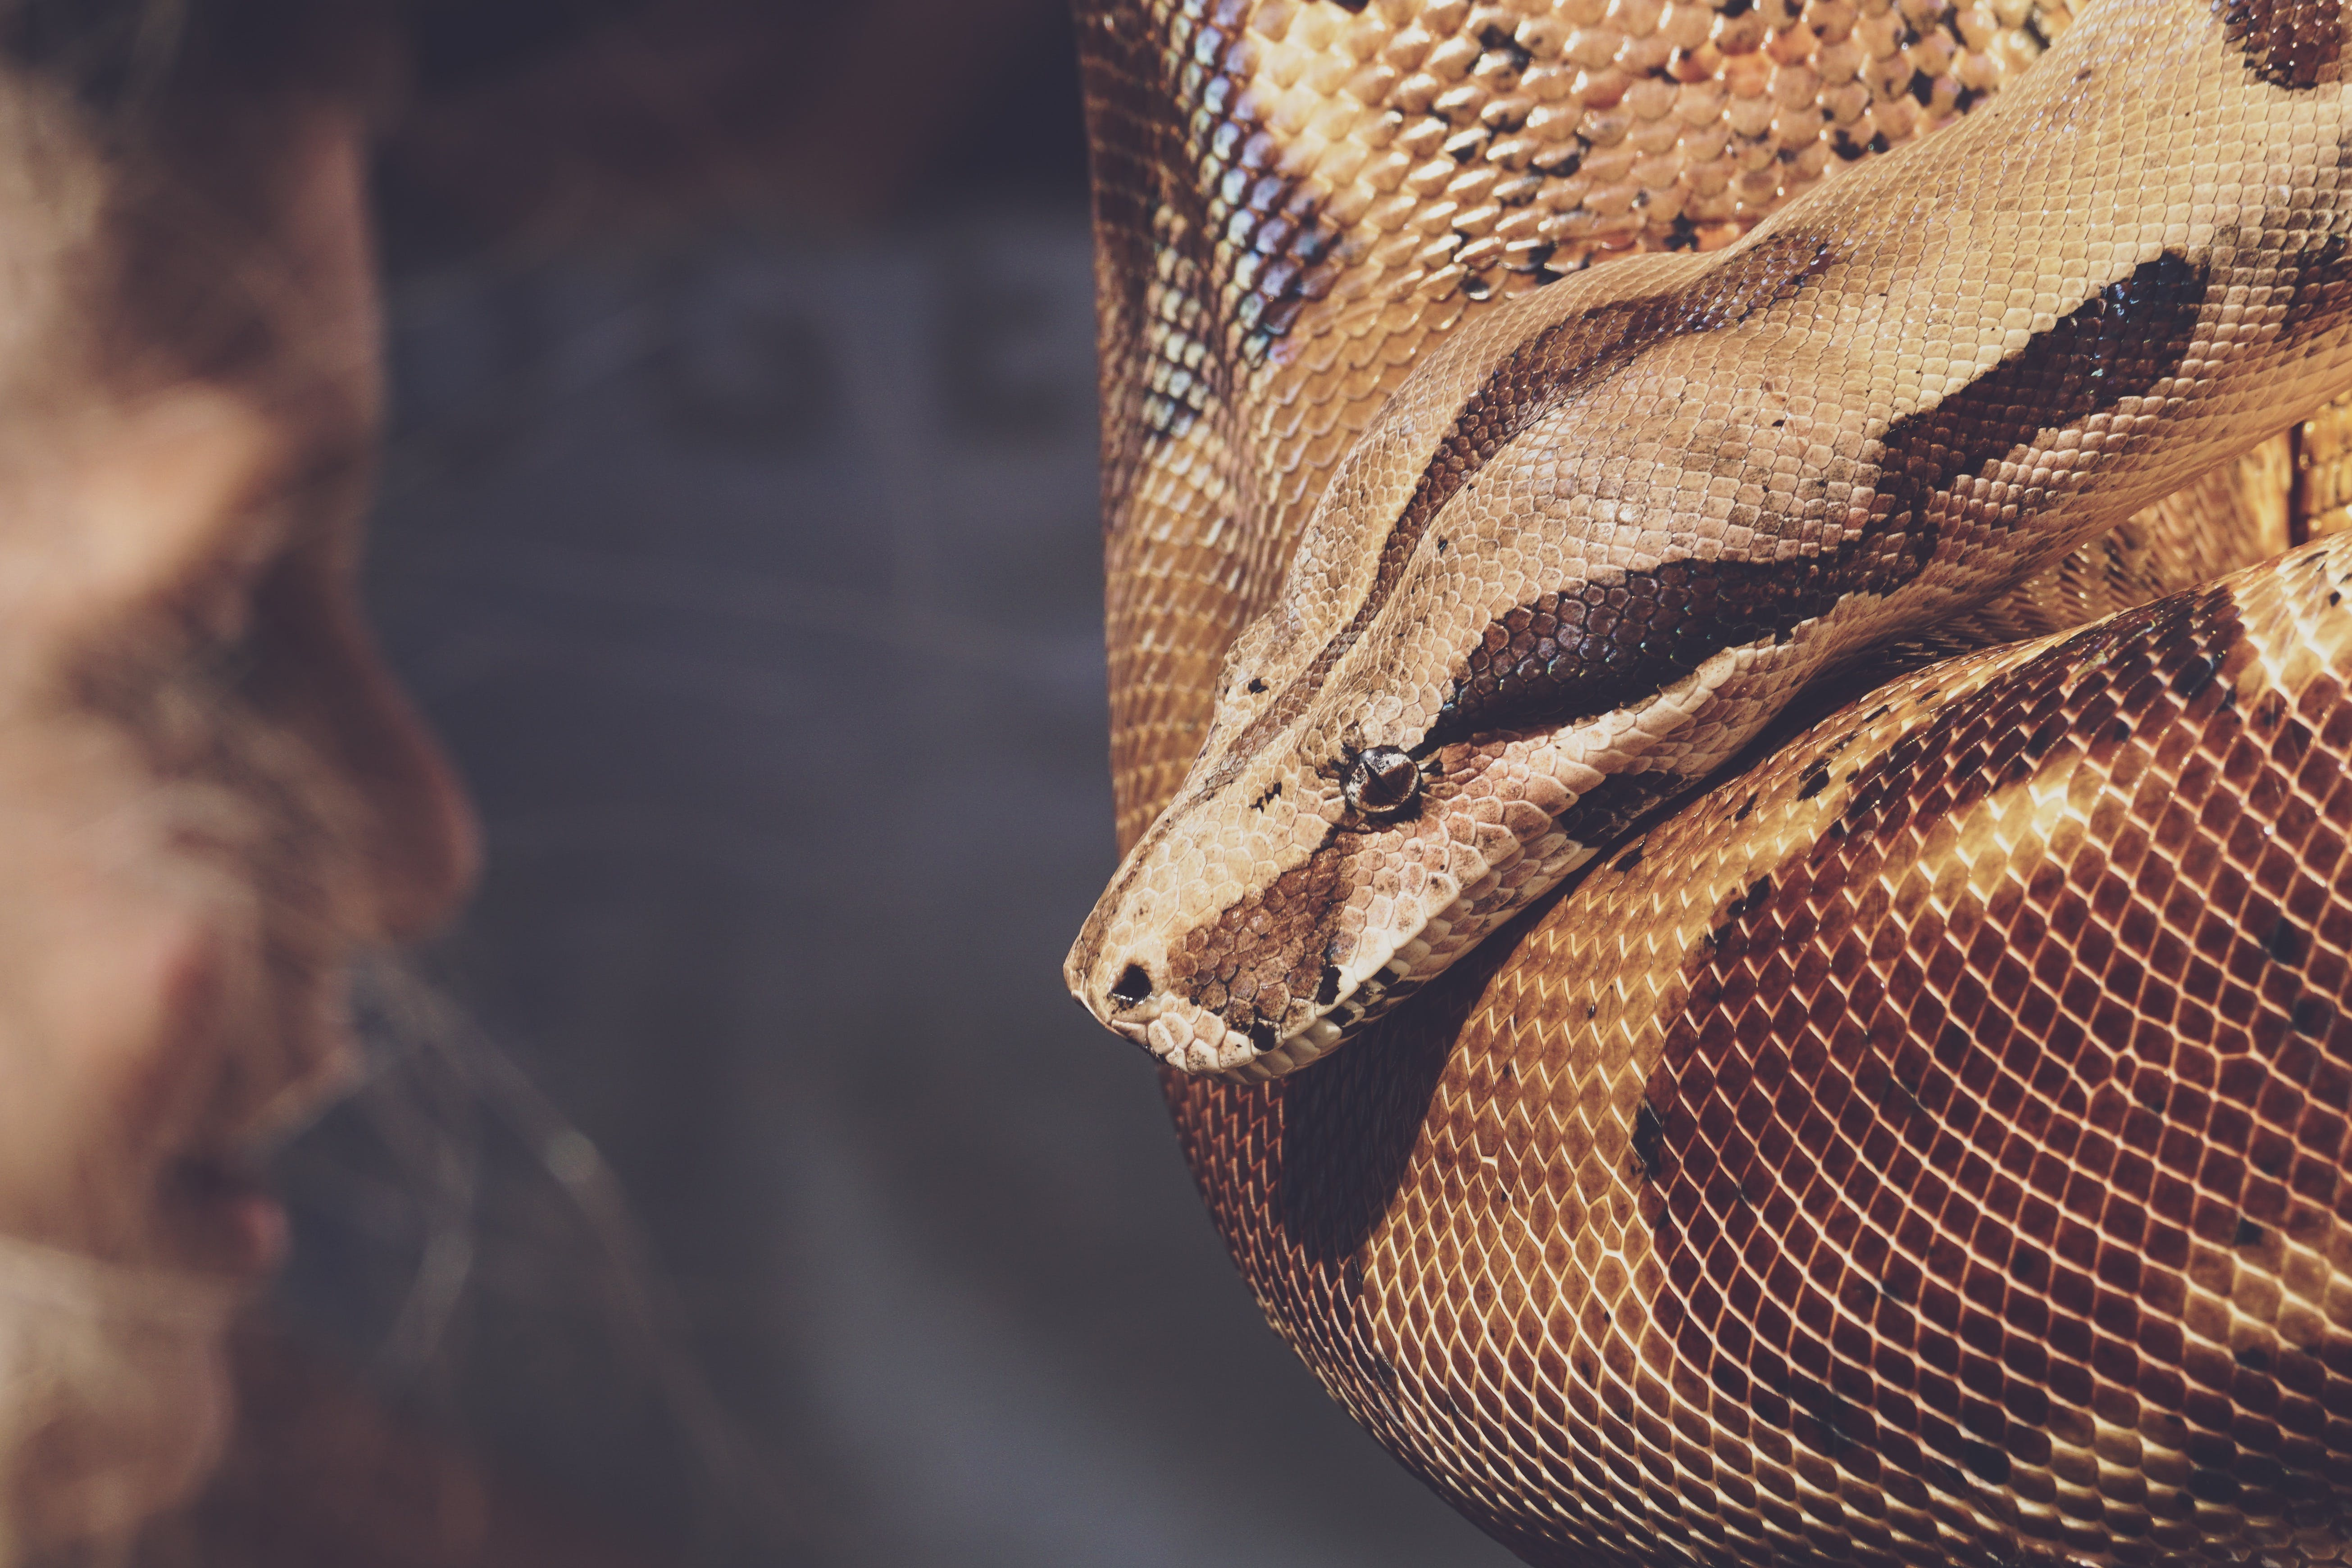 Close-up Photo of Reticulated Python